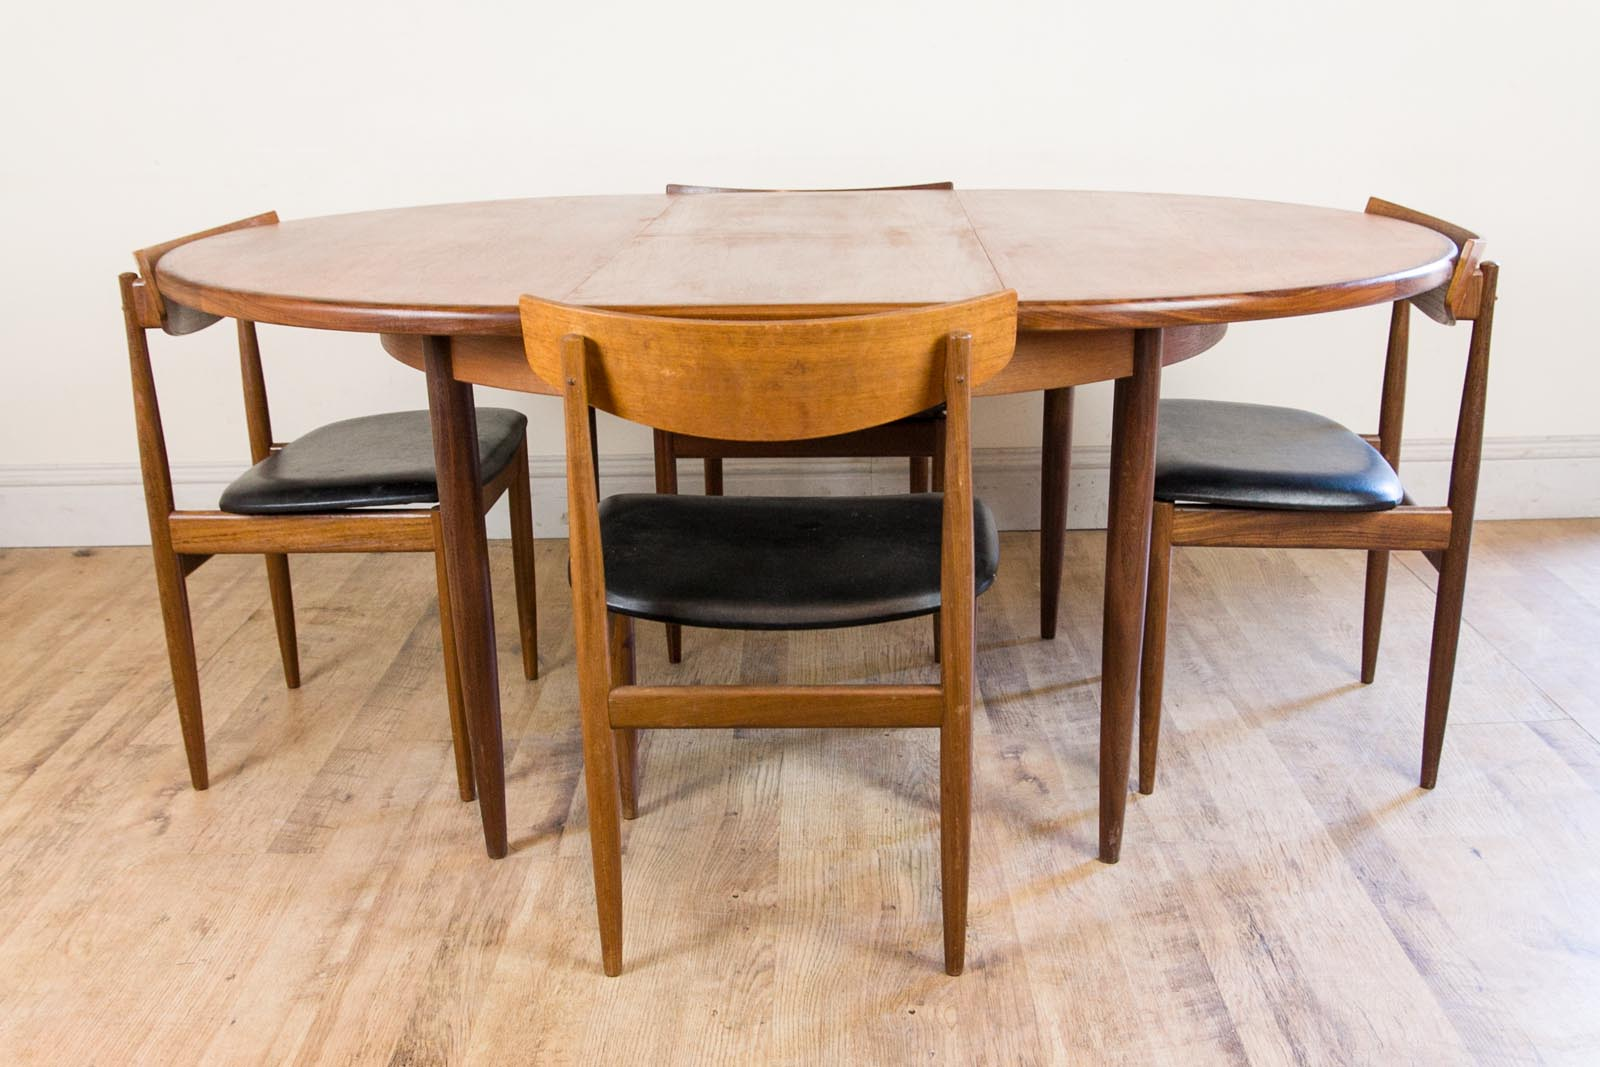 retro dining table chairs uk fabric kitchen with arms vintage g plan and 4 ib kofod larsen